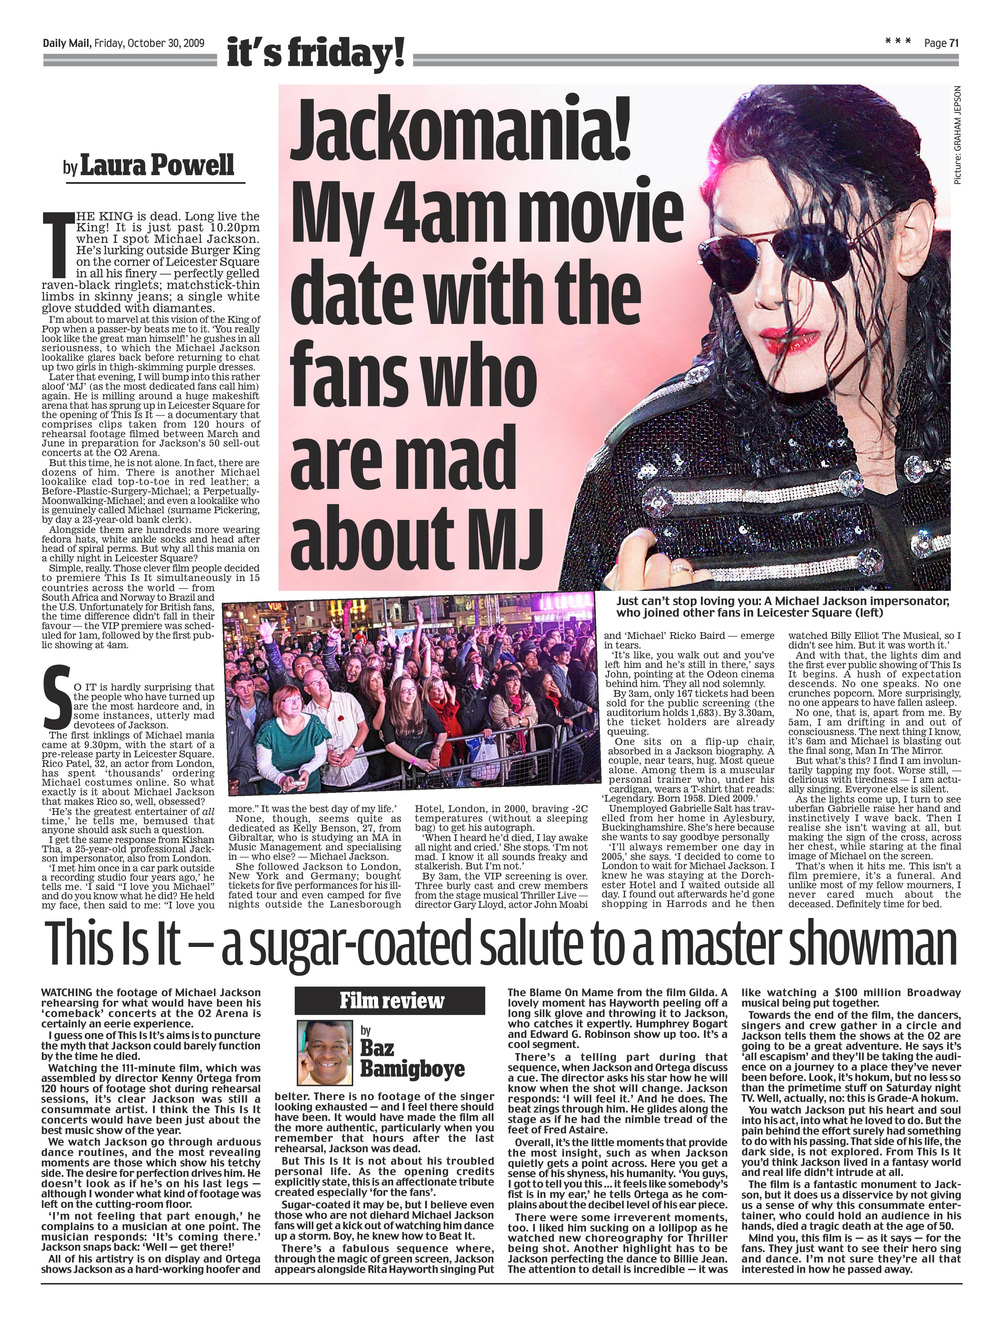 My night with Michael Jackson's superfans   Daily Mail